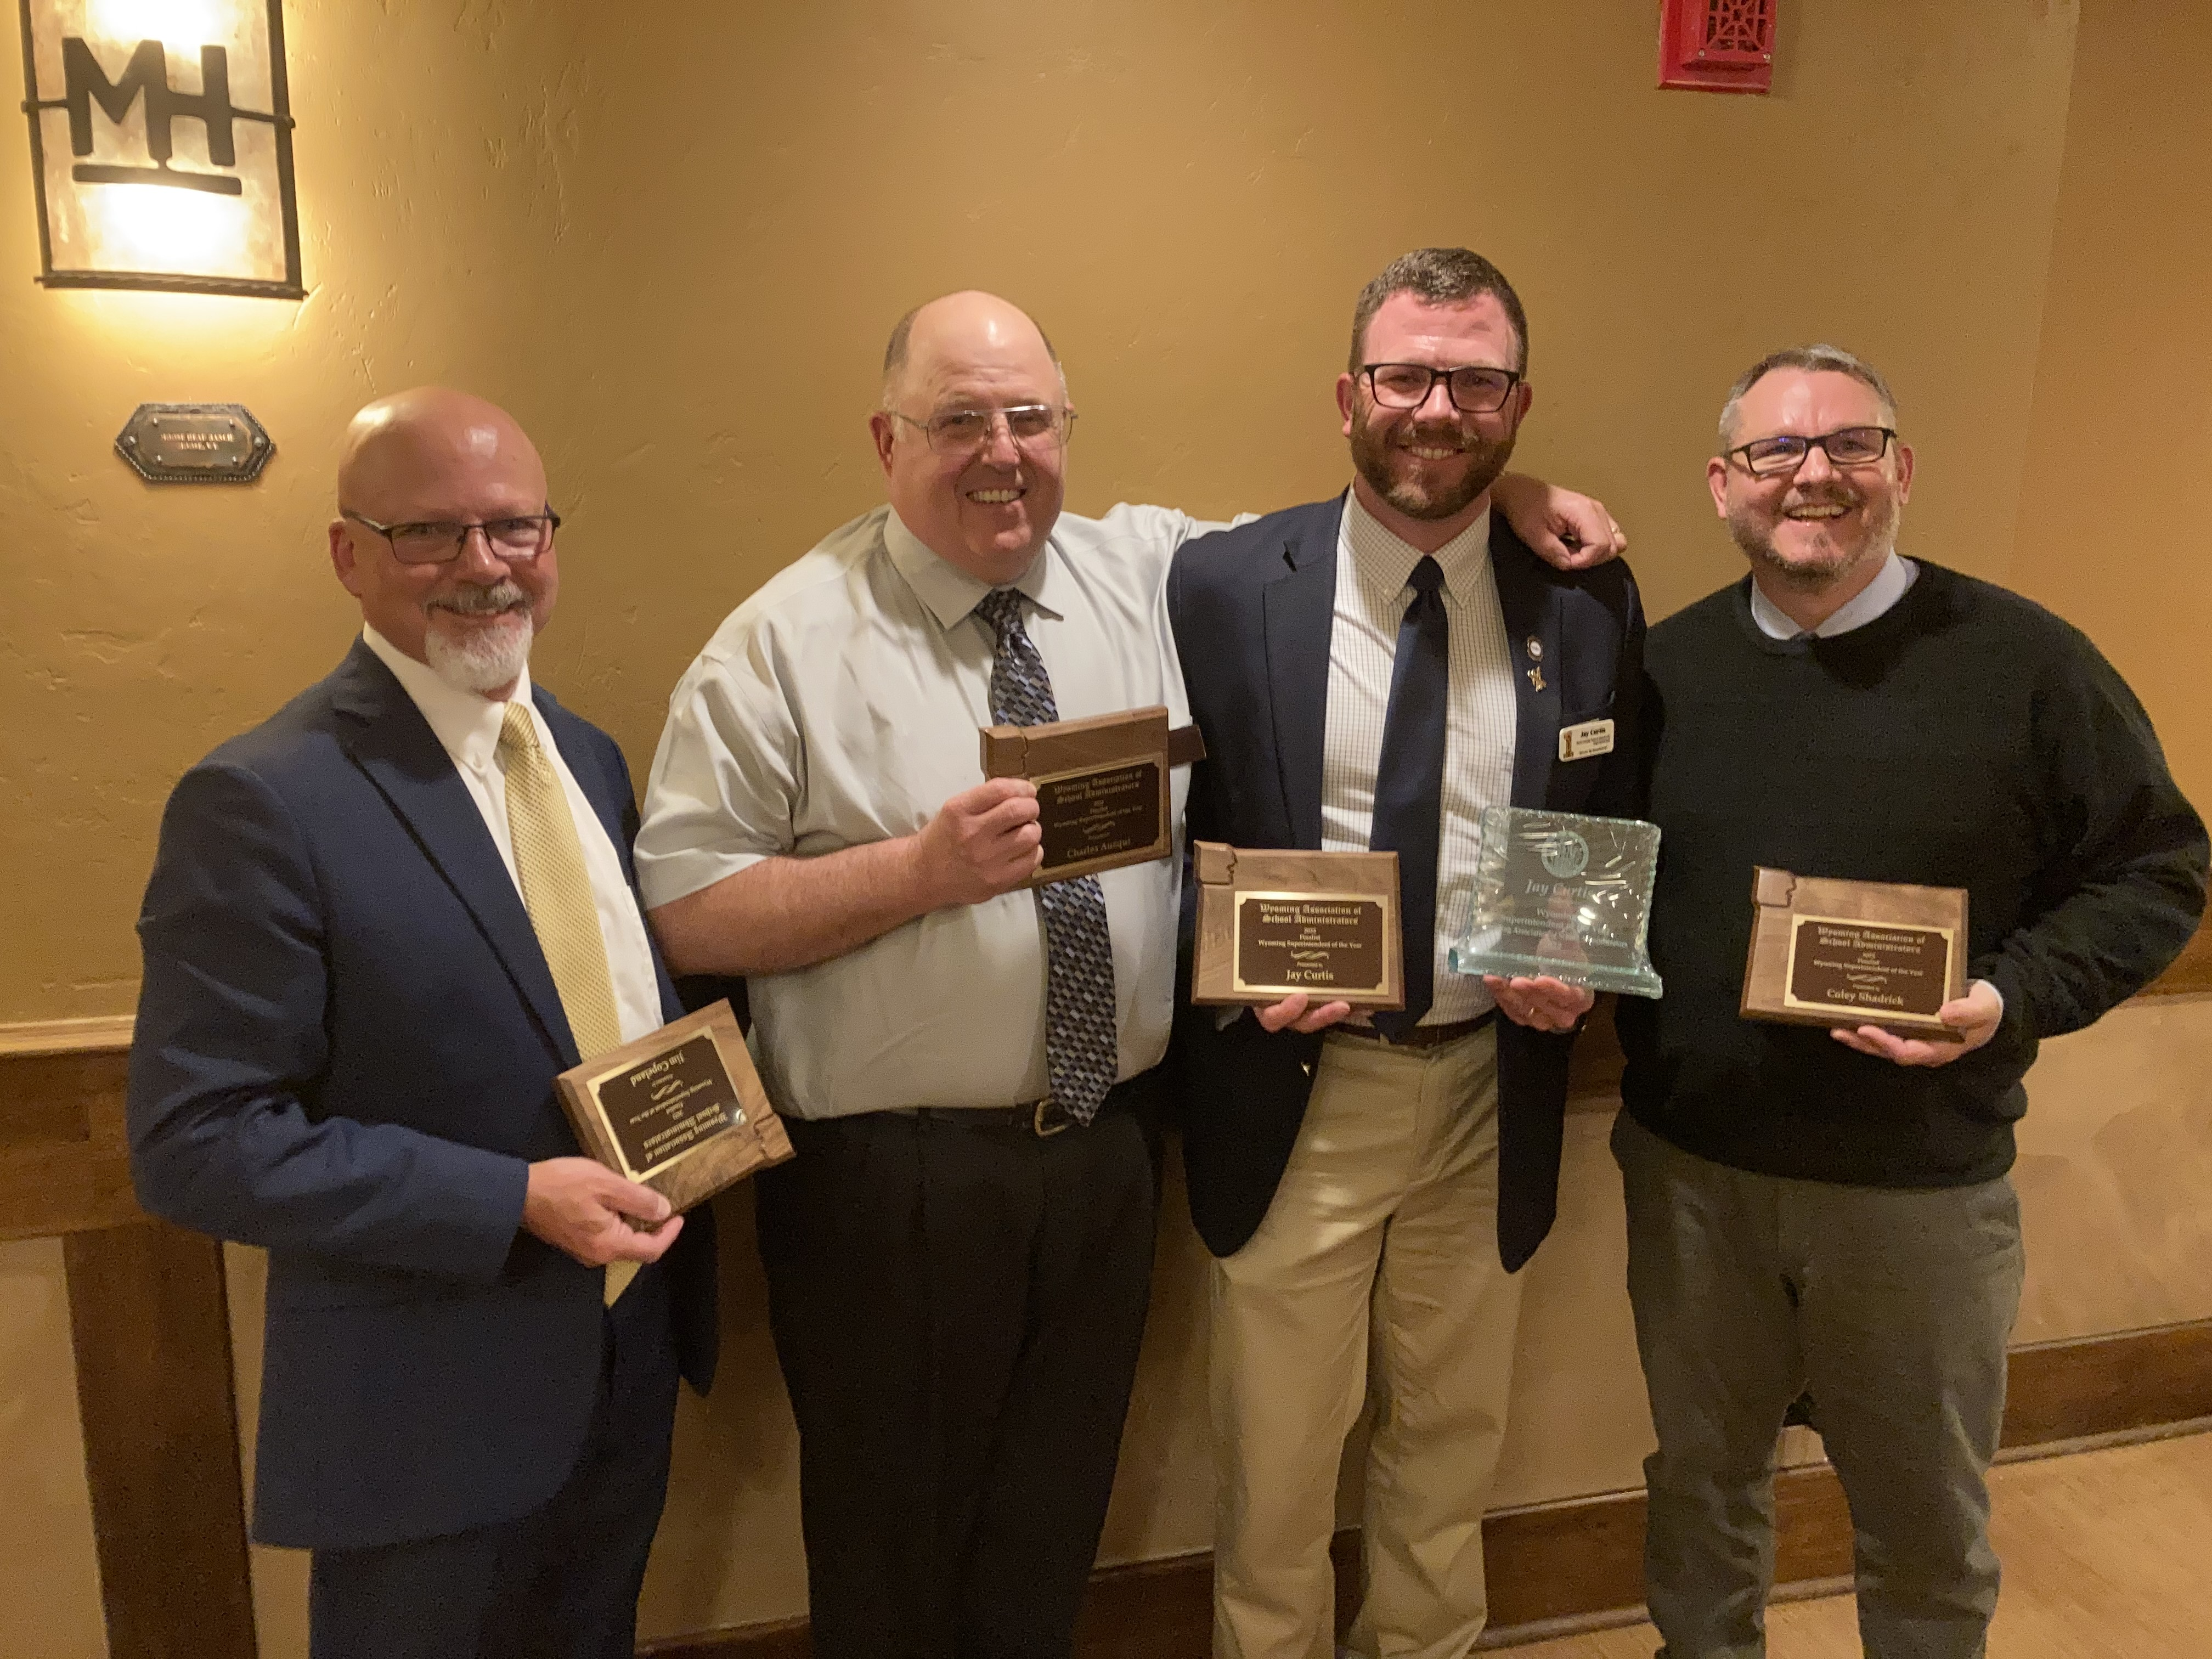 The Nominees for Superintendent of the Year